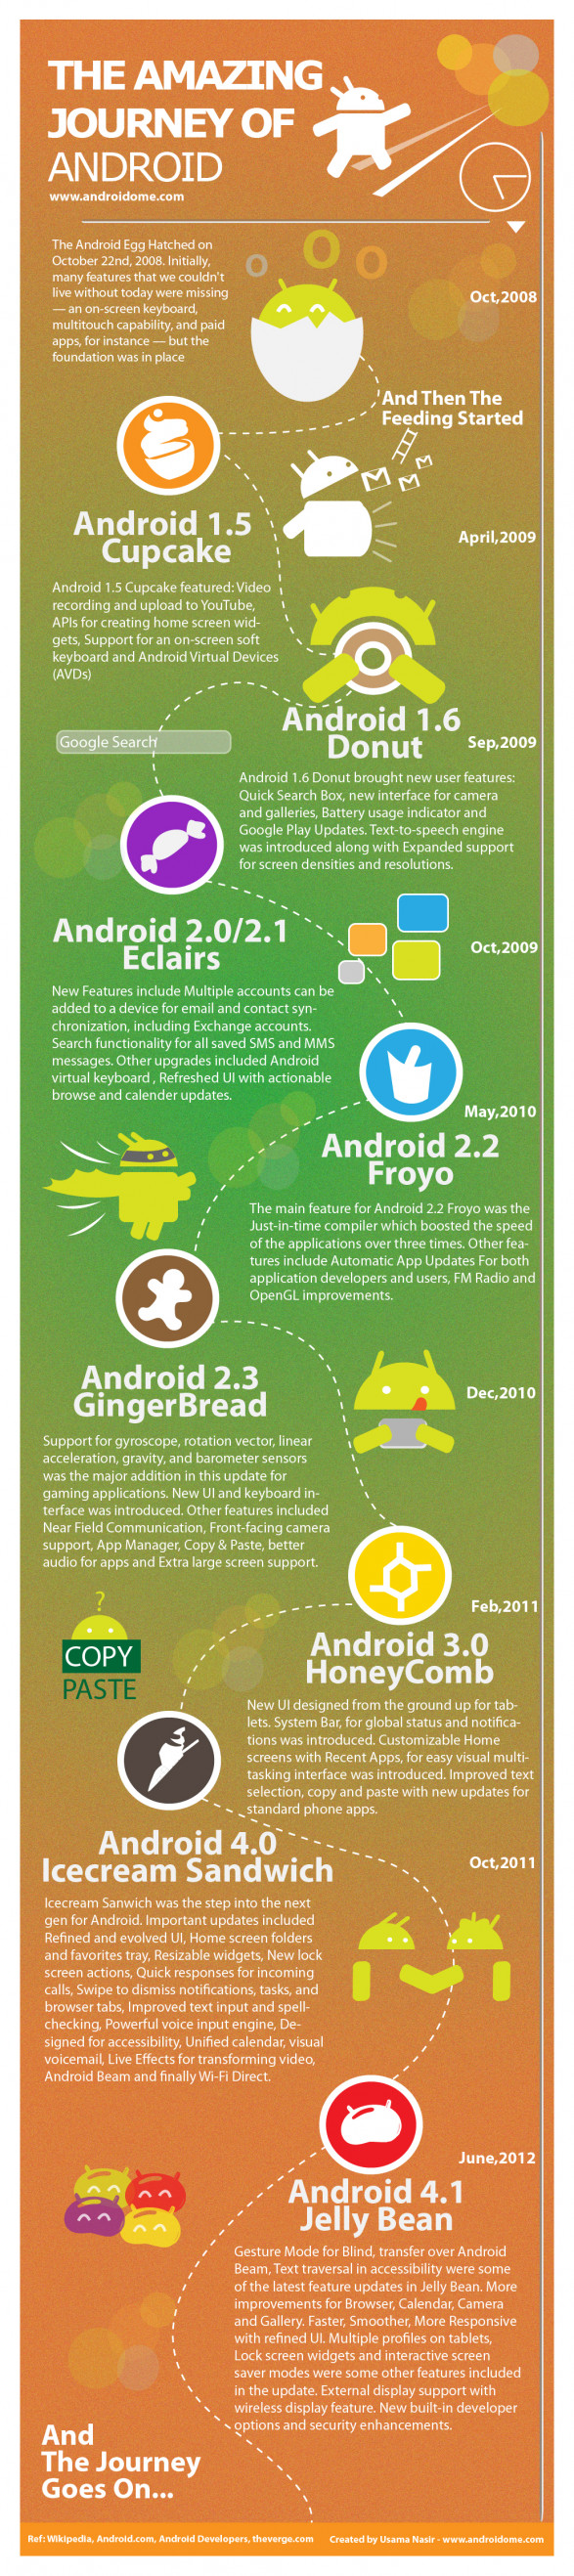 The Amazing Journey of Android